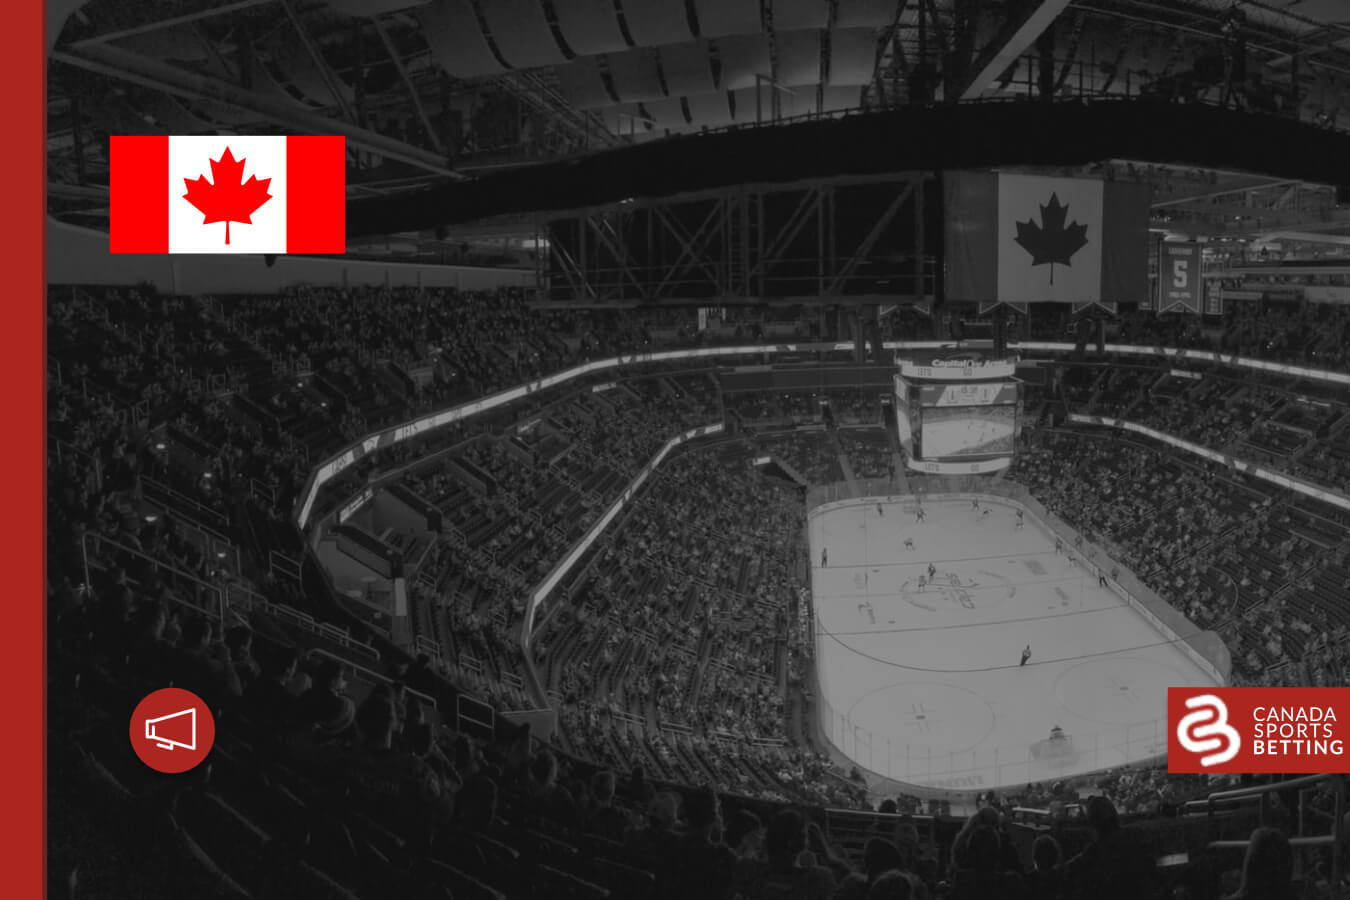 Sports Betting Bill Allowing Betting on Single-games Passed in The House of Commons